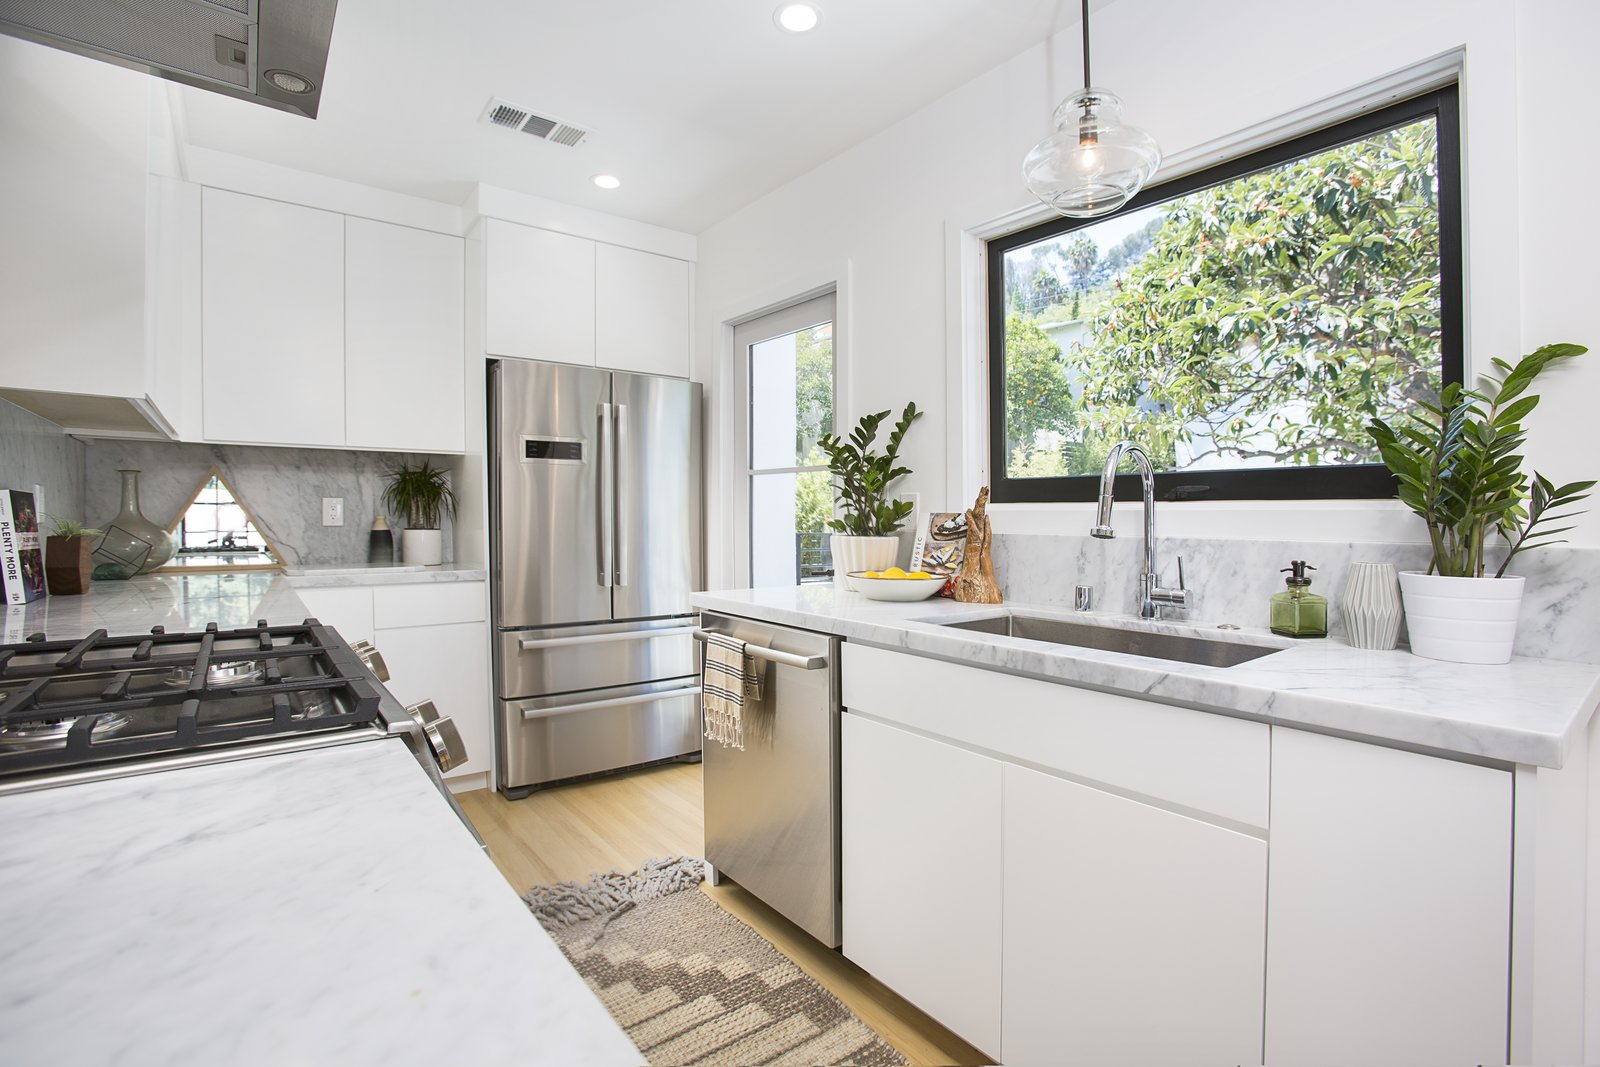 Kitchen, White Cabinet, Marble Counter, Wood Cabinet, Ceiling Lighting, Recessed Lighting, Pendant Lighting, Light Hardwood Floor, Stone Slab Backsplashe, Refrigerator, Dishwasher, Range, Range Hood, and Undermount Sink  Silverlake on Riverside Terrace